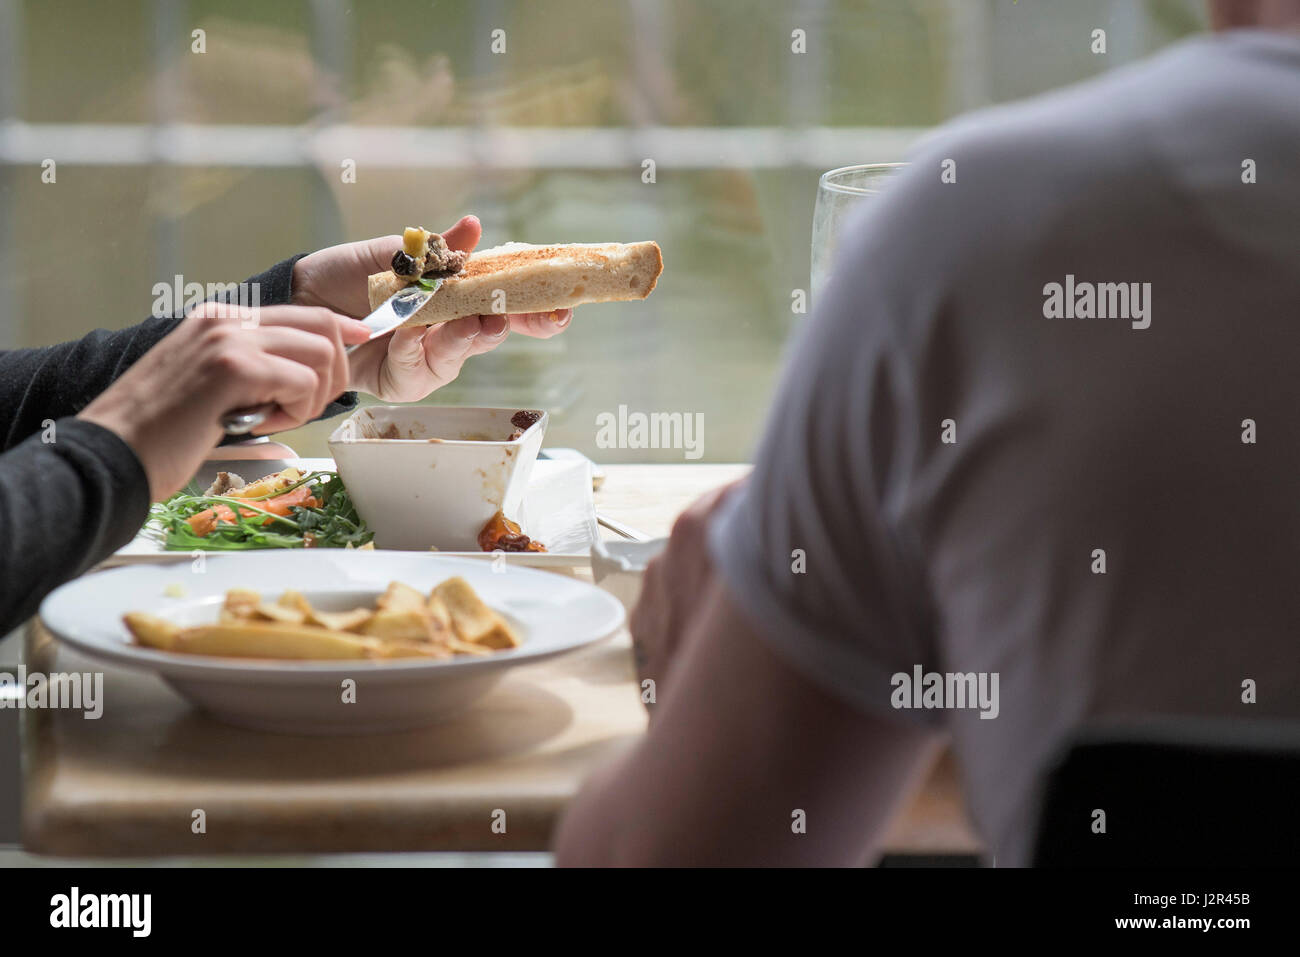 Restaurant Dining Diners Food Meal Customer Eating Enjoying a meal - Stock Image